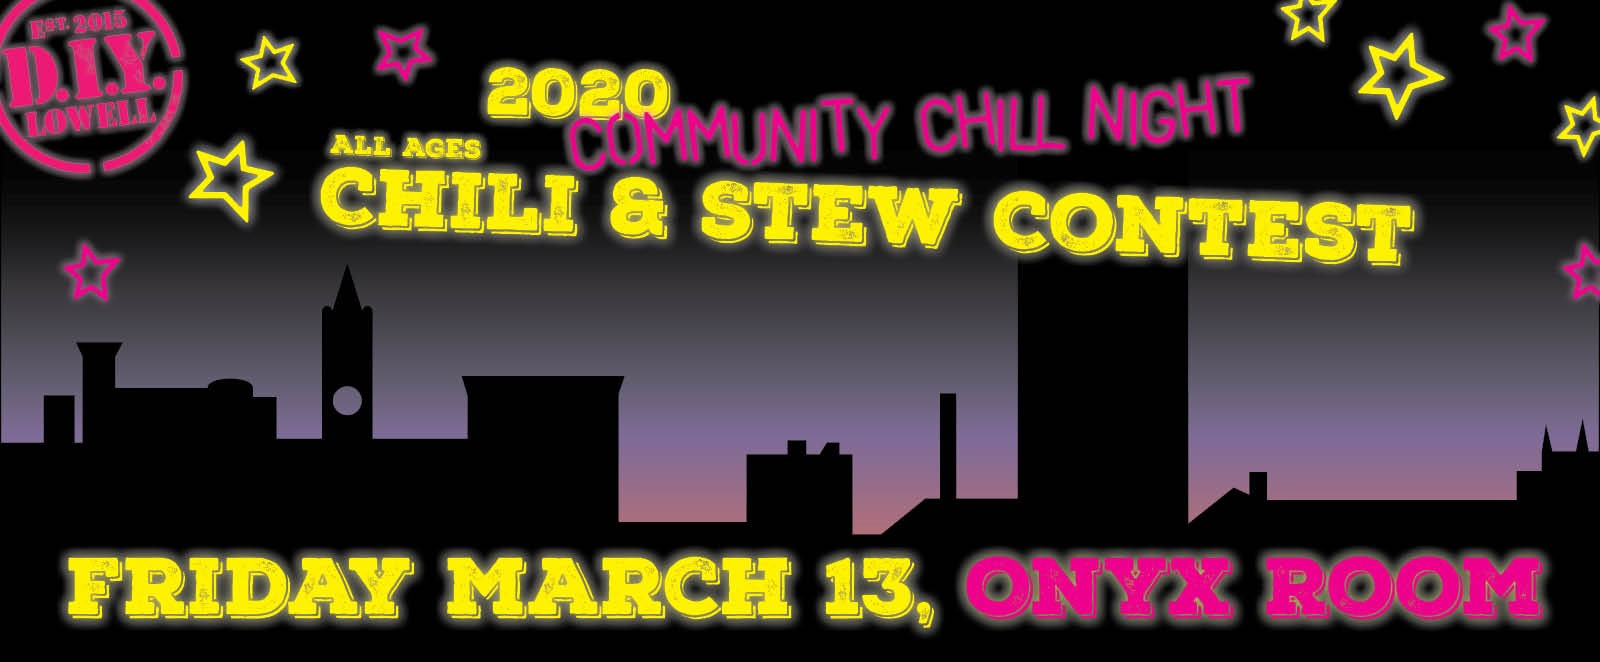 2020 Community Chill Night - Chili and Stew Contest